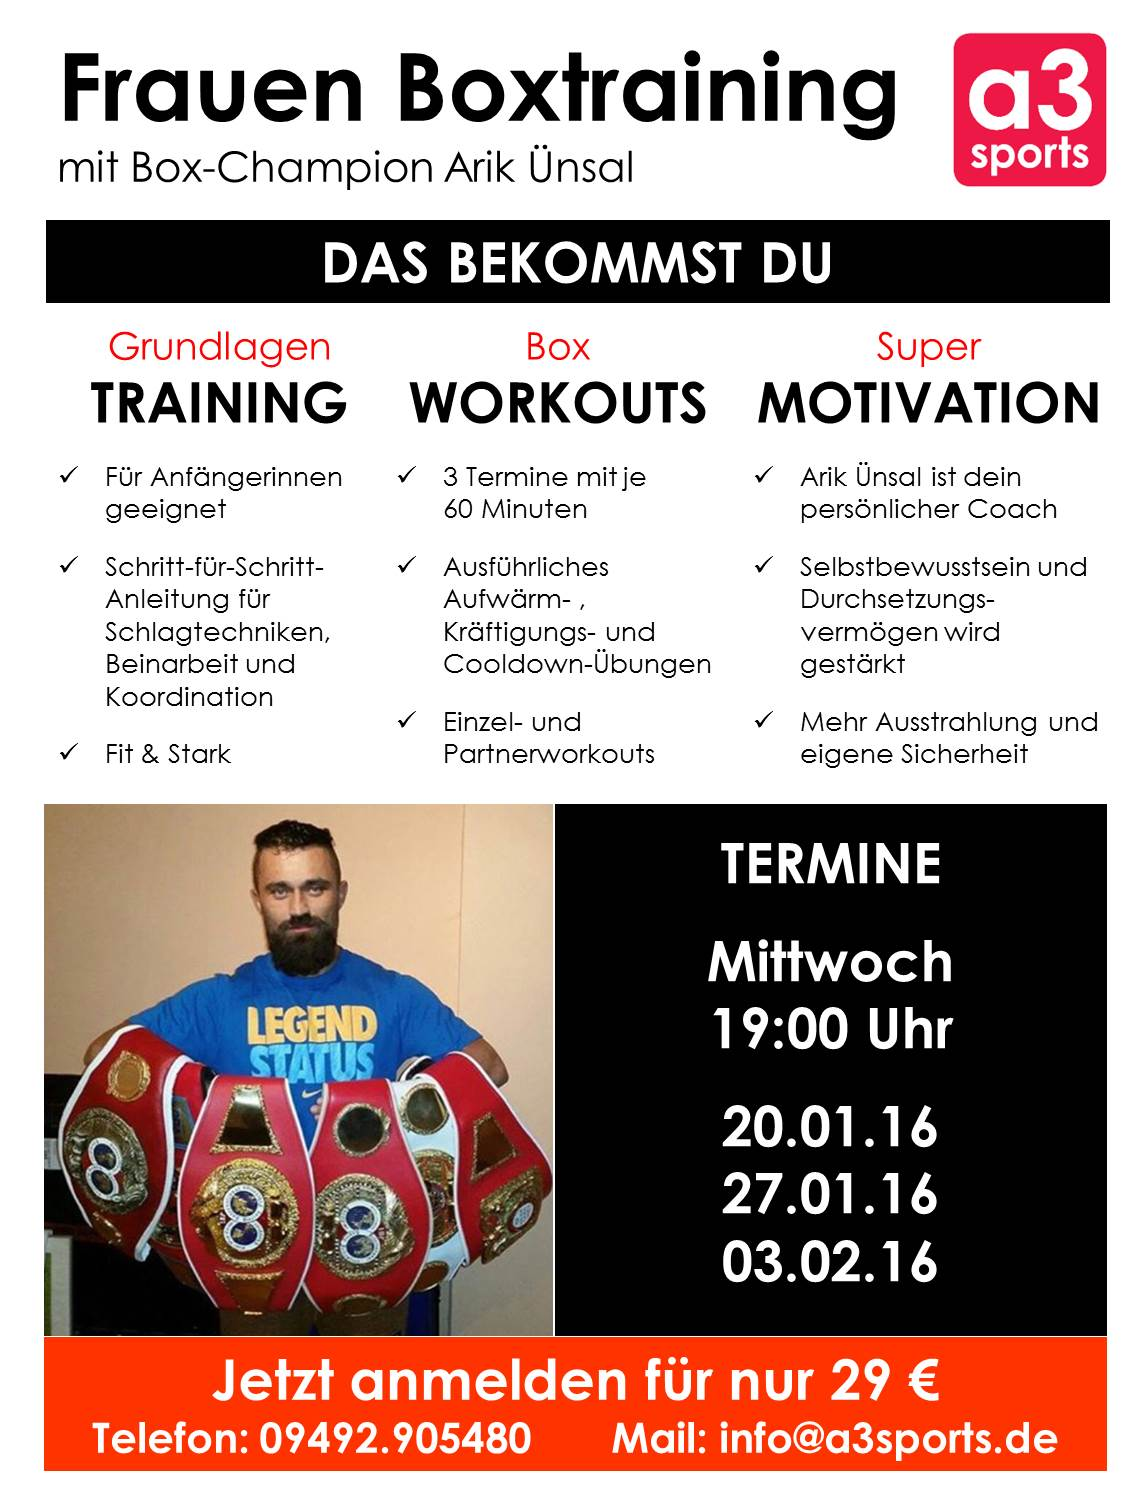 Frauen Boxtraining Jan2016